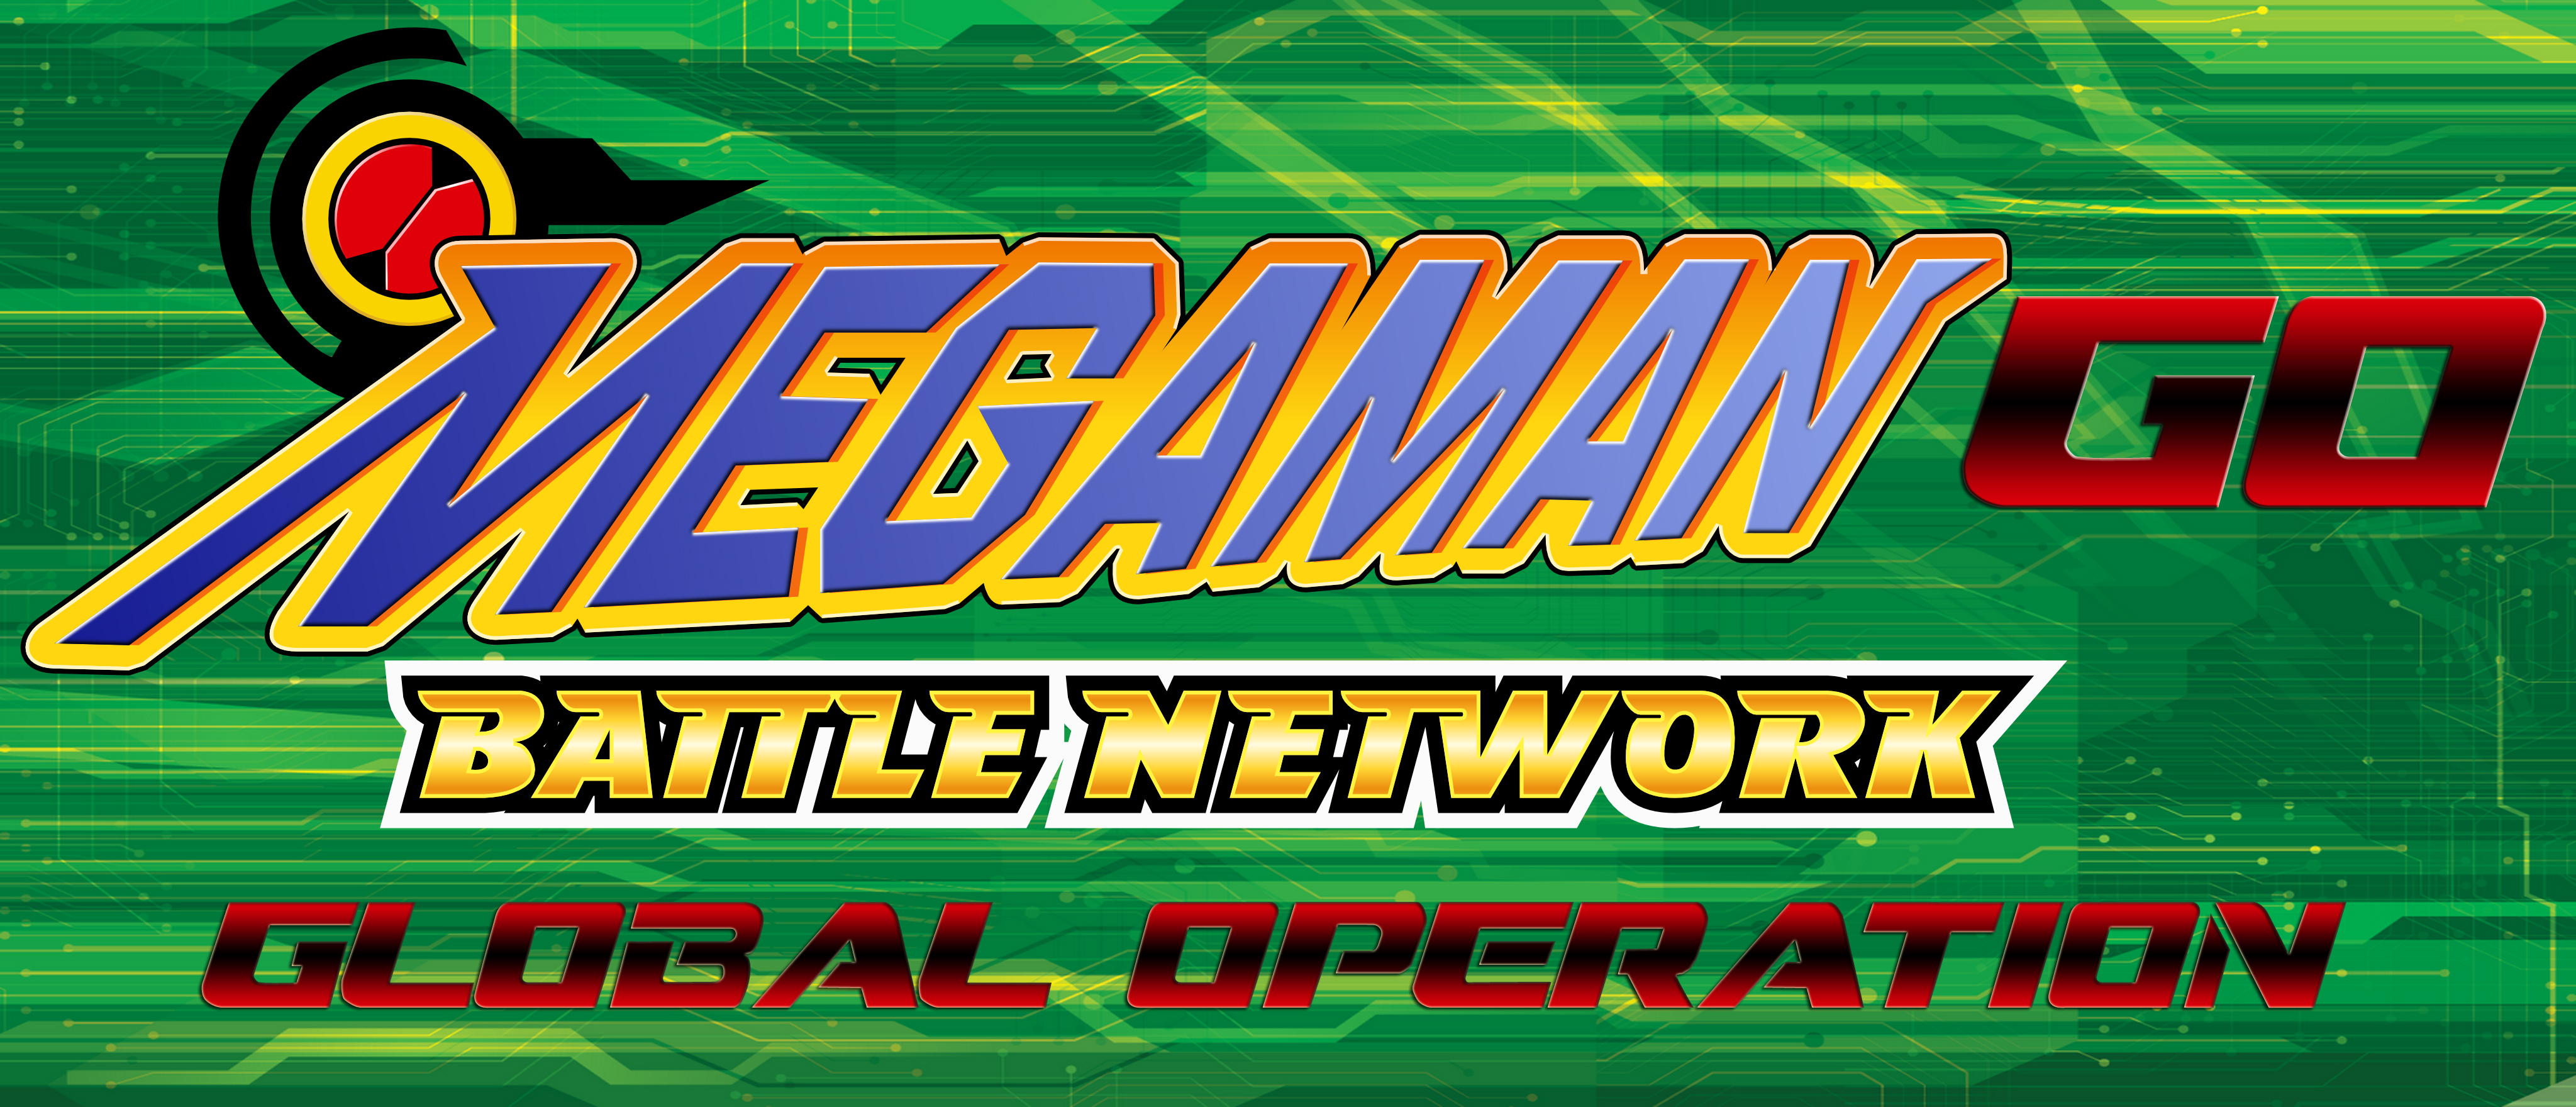 How Megaman Takes Over The World, Megaman Battle Network: Global Operation